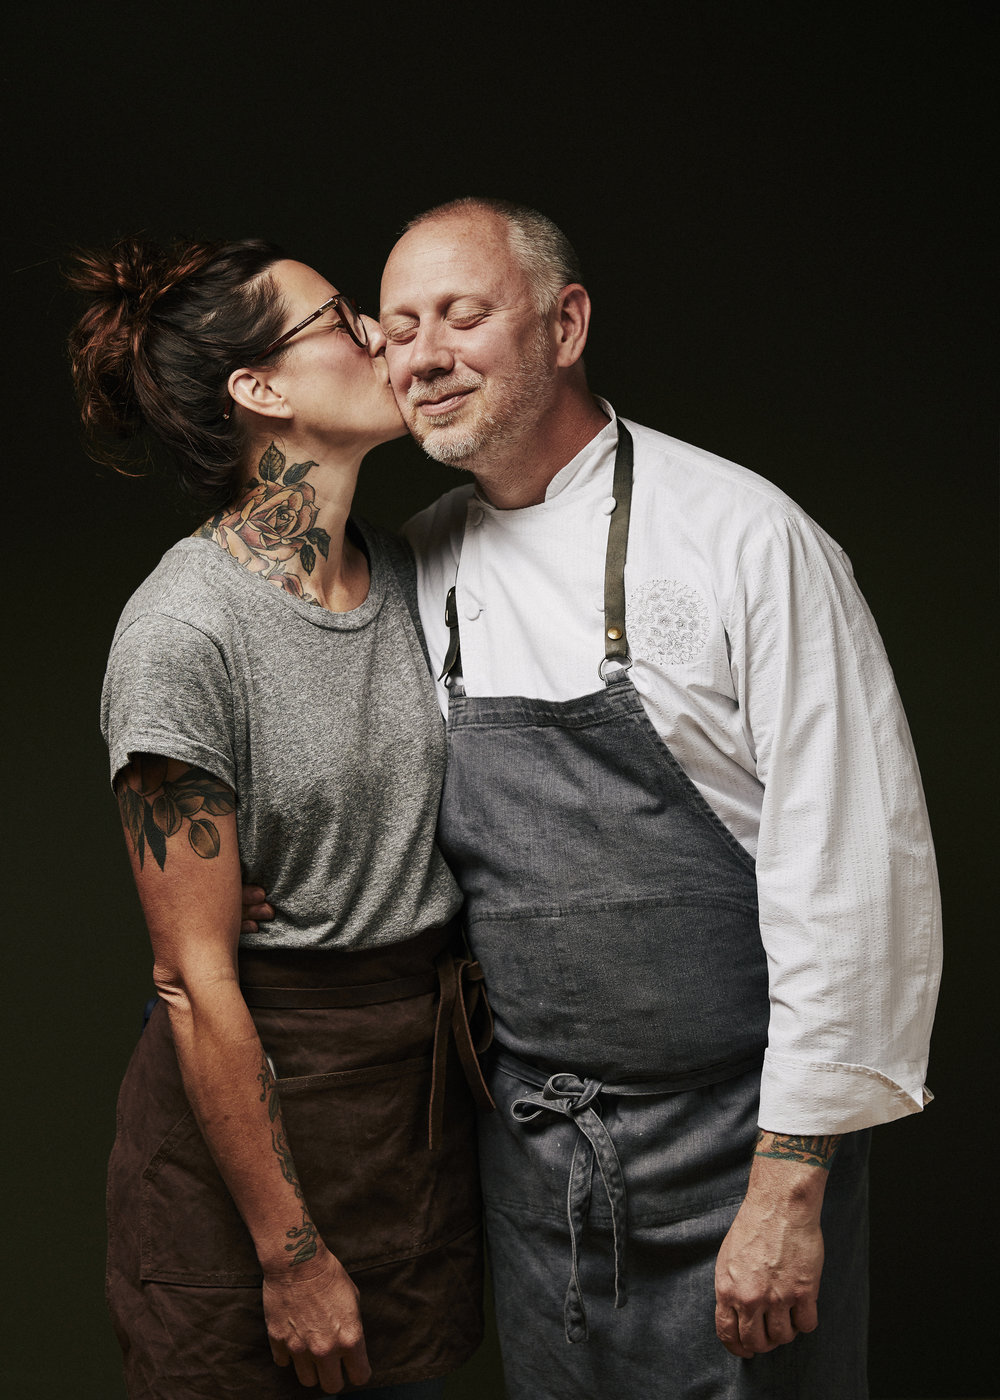 Burggraaf_Charity-Seattle_Chef_Photographer_Willows_Smyth_SingleThread-KyleConnaughton_2.jpg